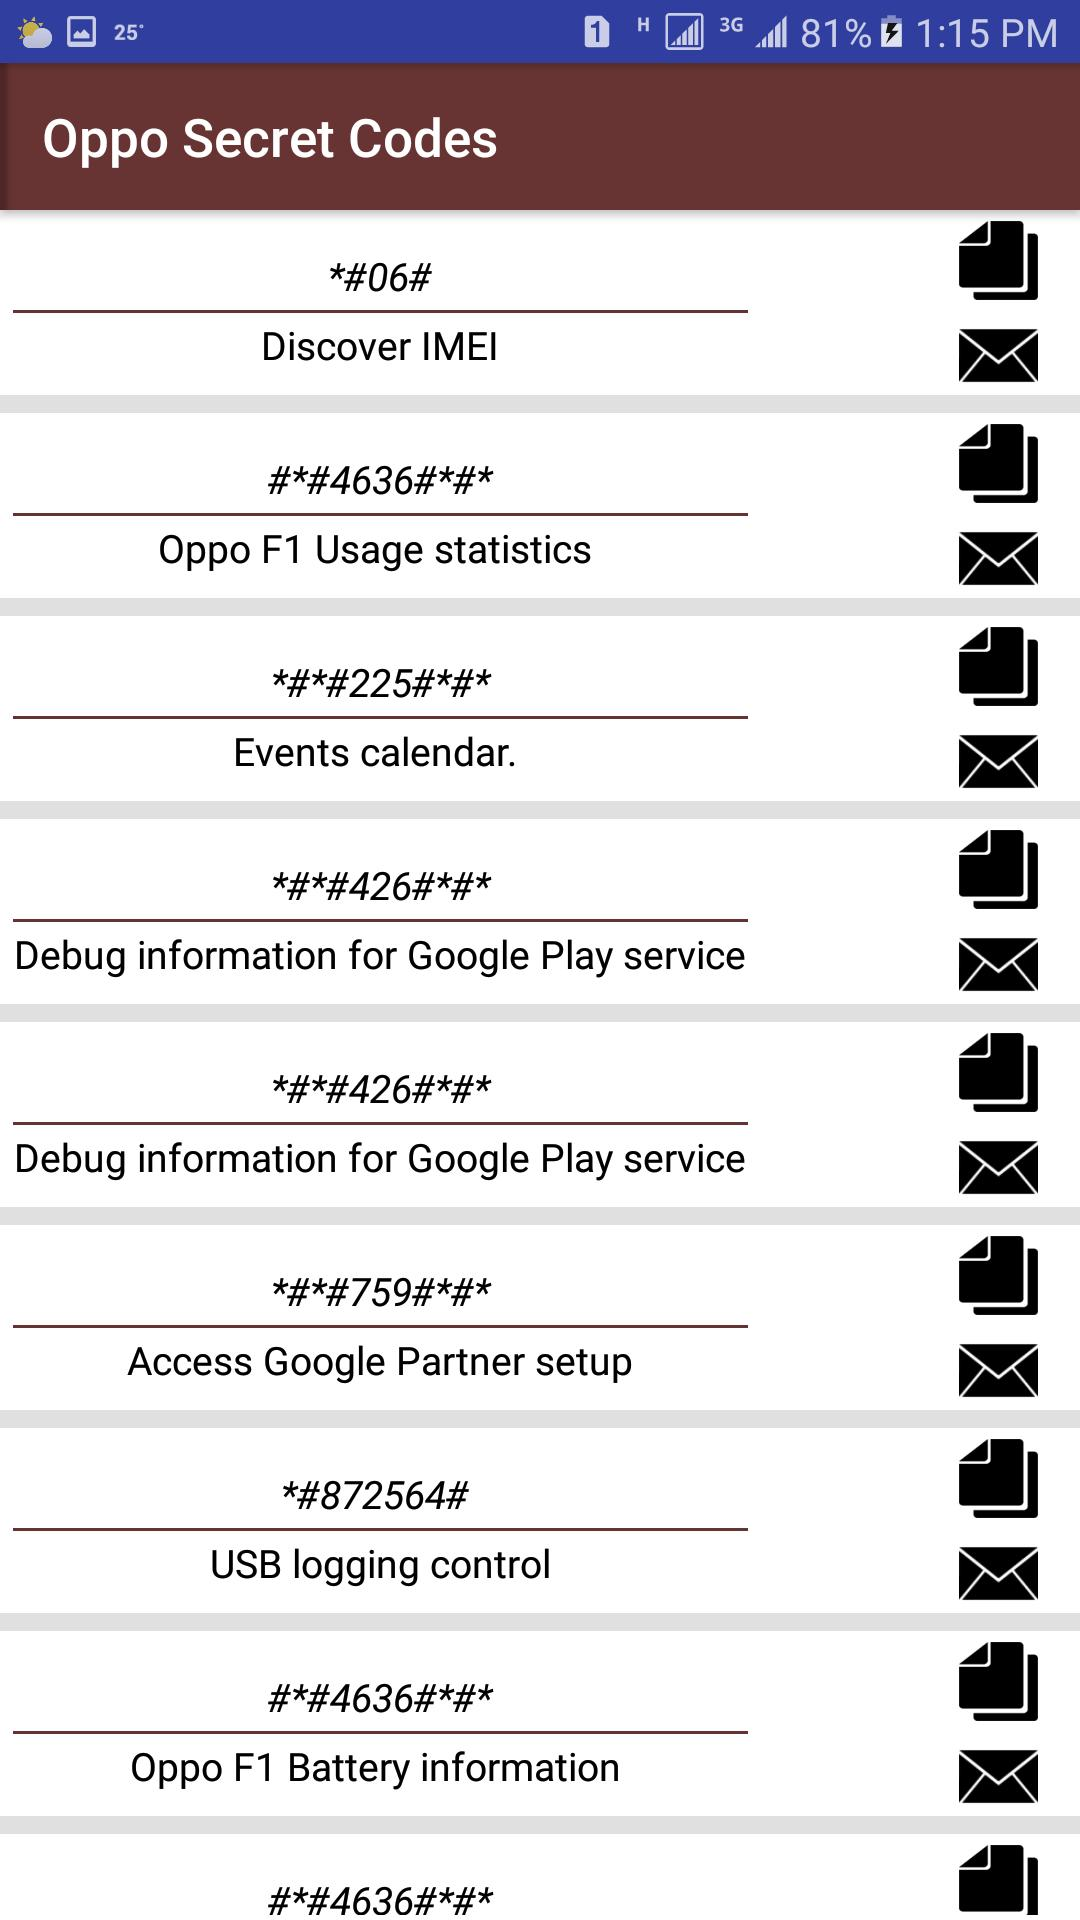 Secret Codes of Mobiles: for Android - APK Download